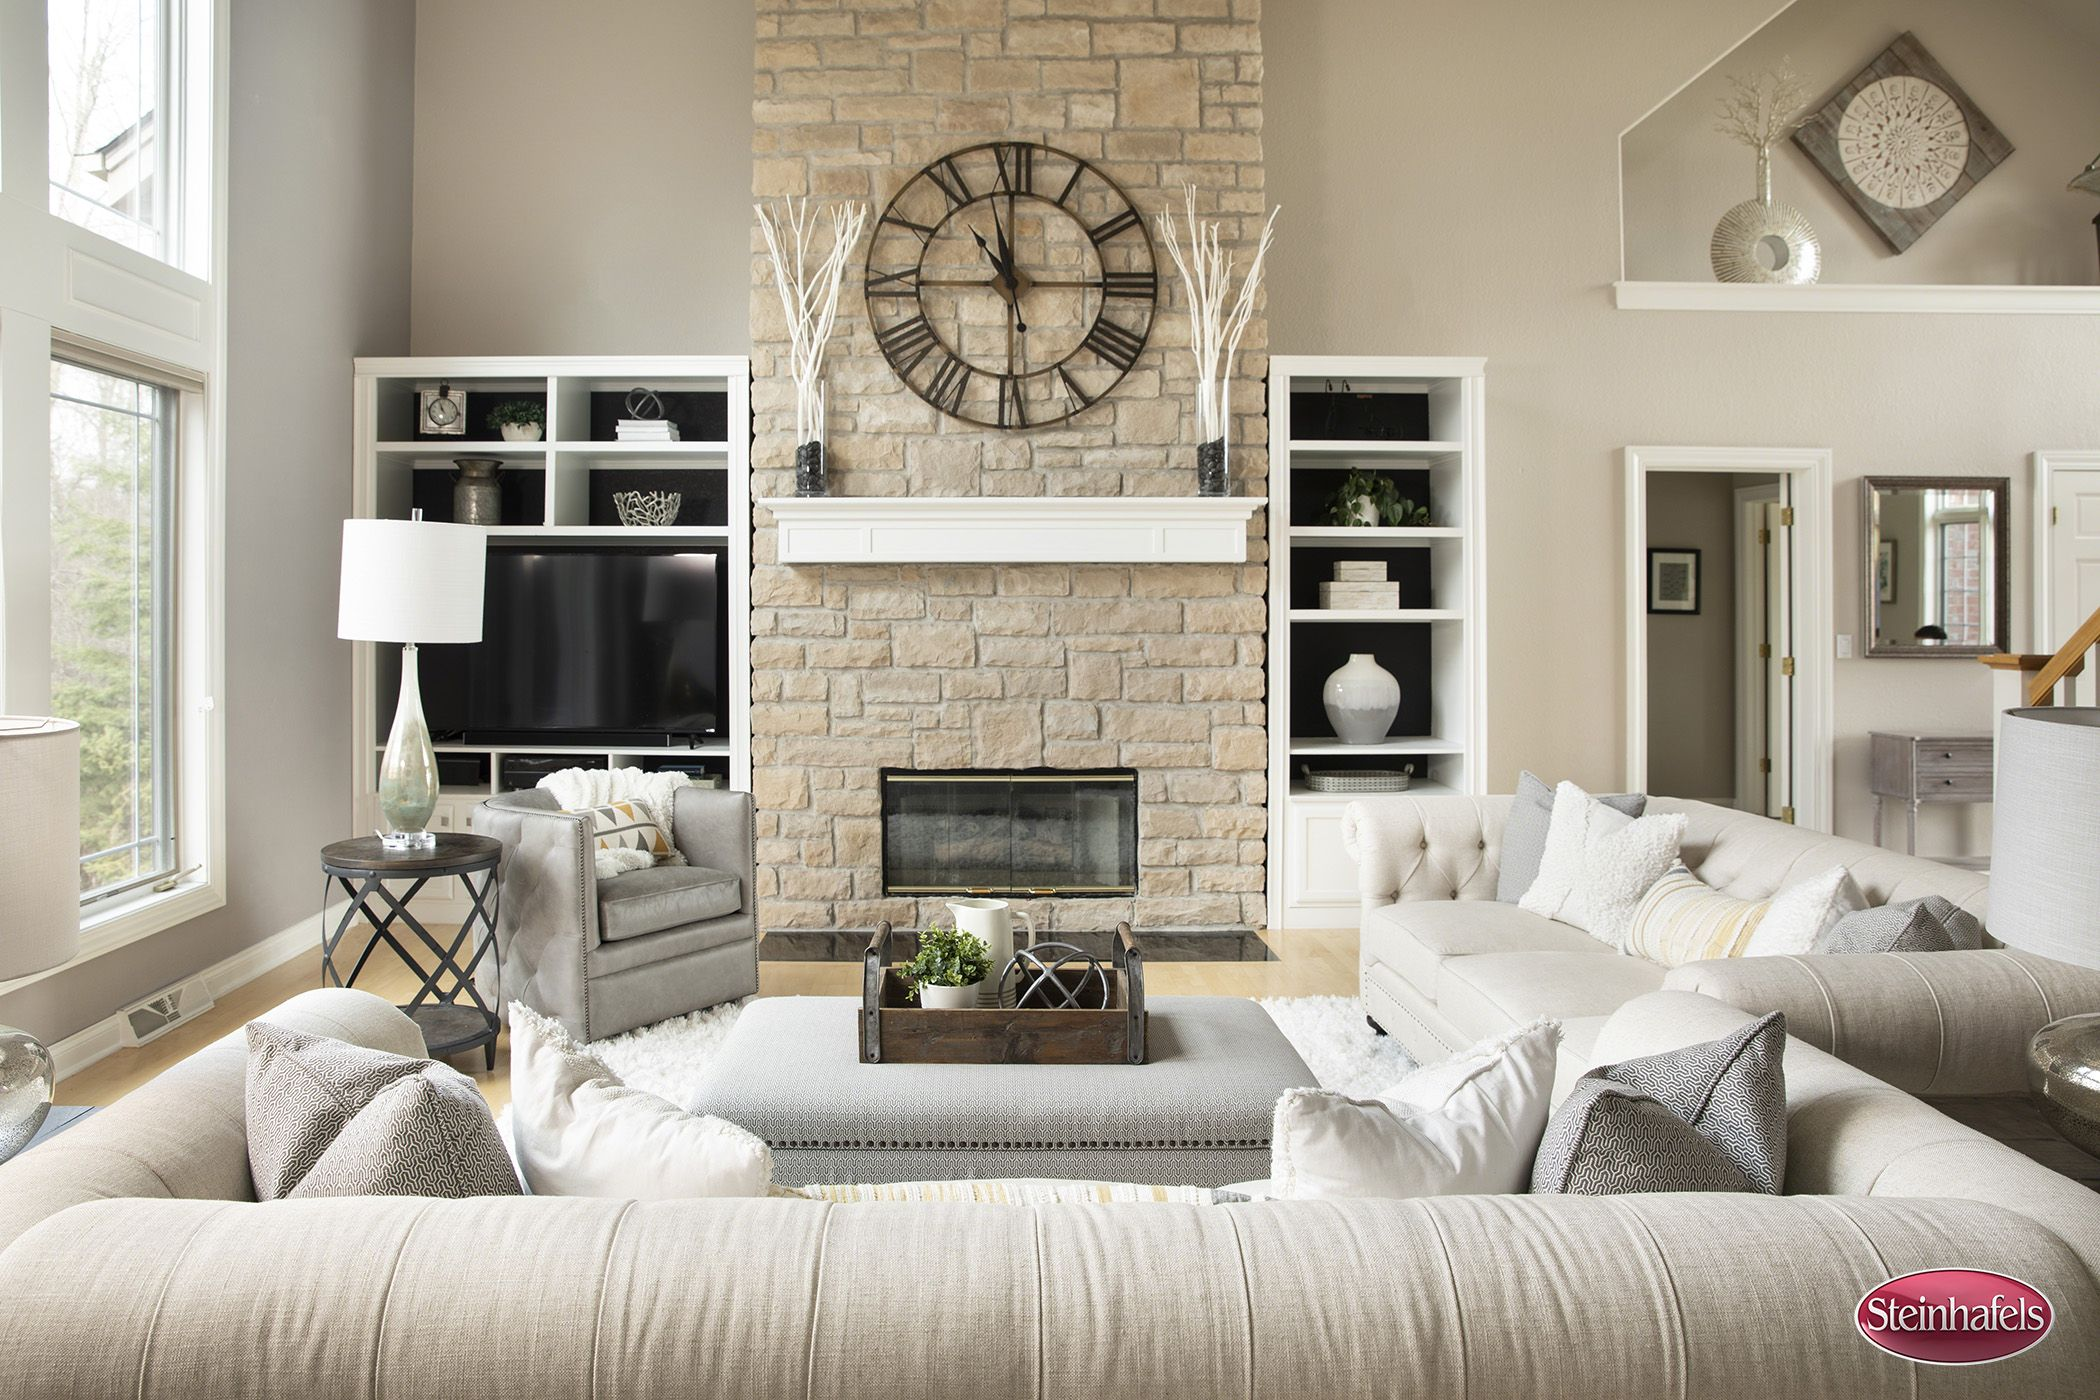 Let Steinhafels transform your home with Decorating ...